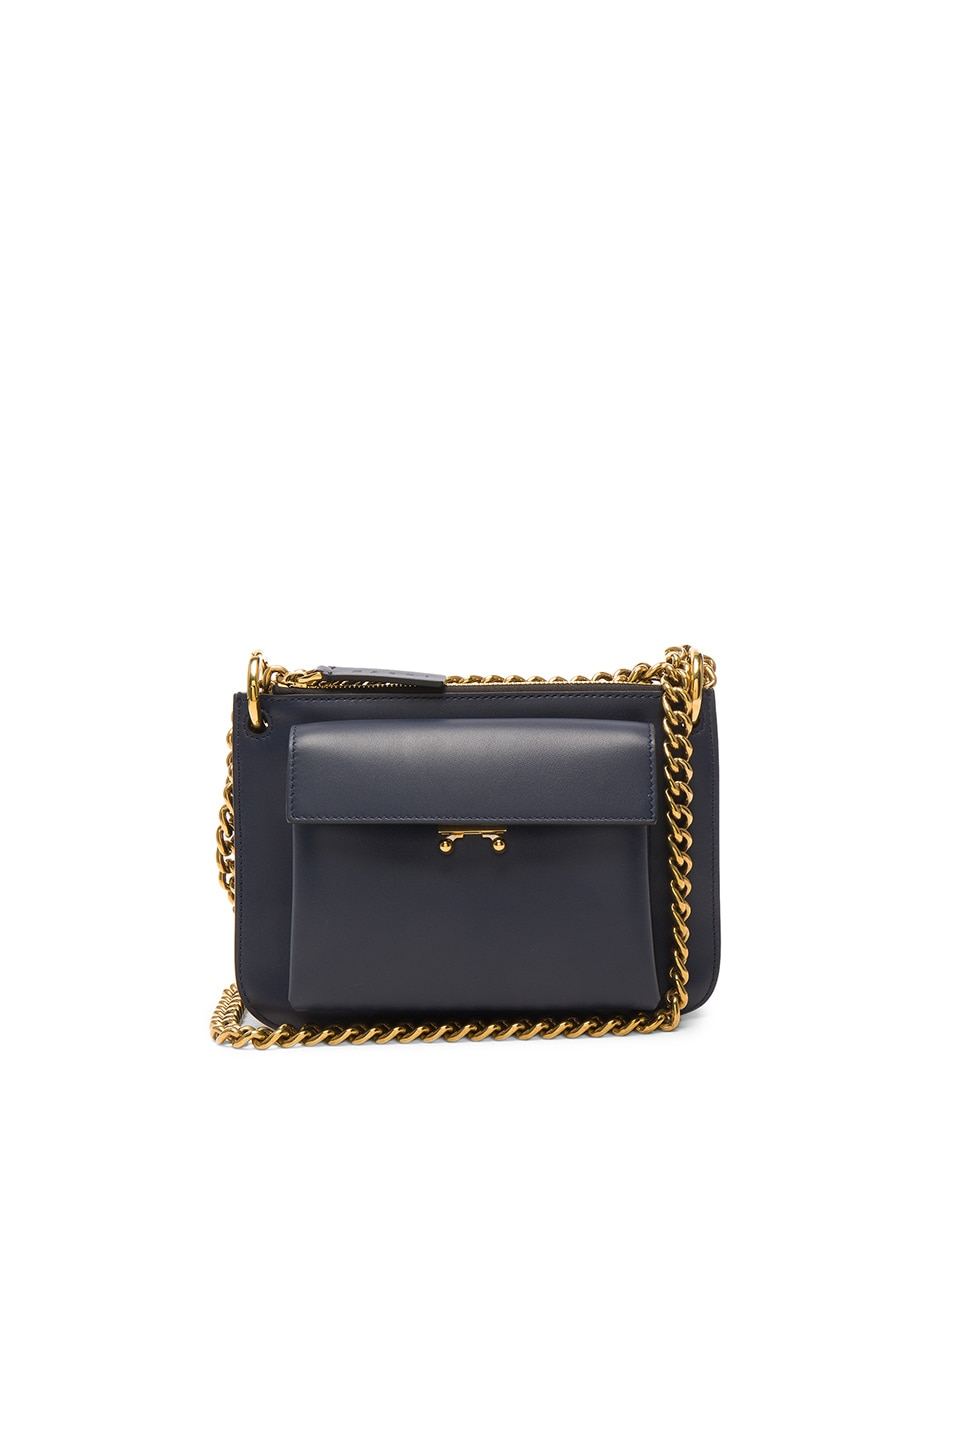 Image 1 of Marni Calf Leather Shoulder Bag in Blue China   Black 181cac1f9a9b4